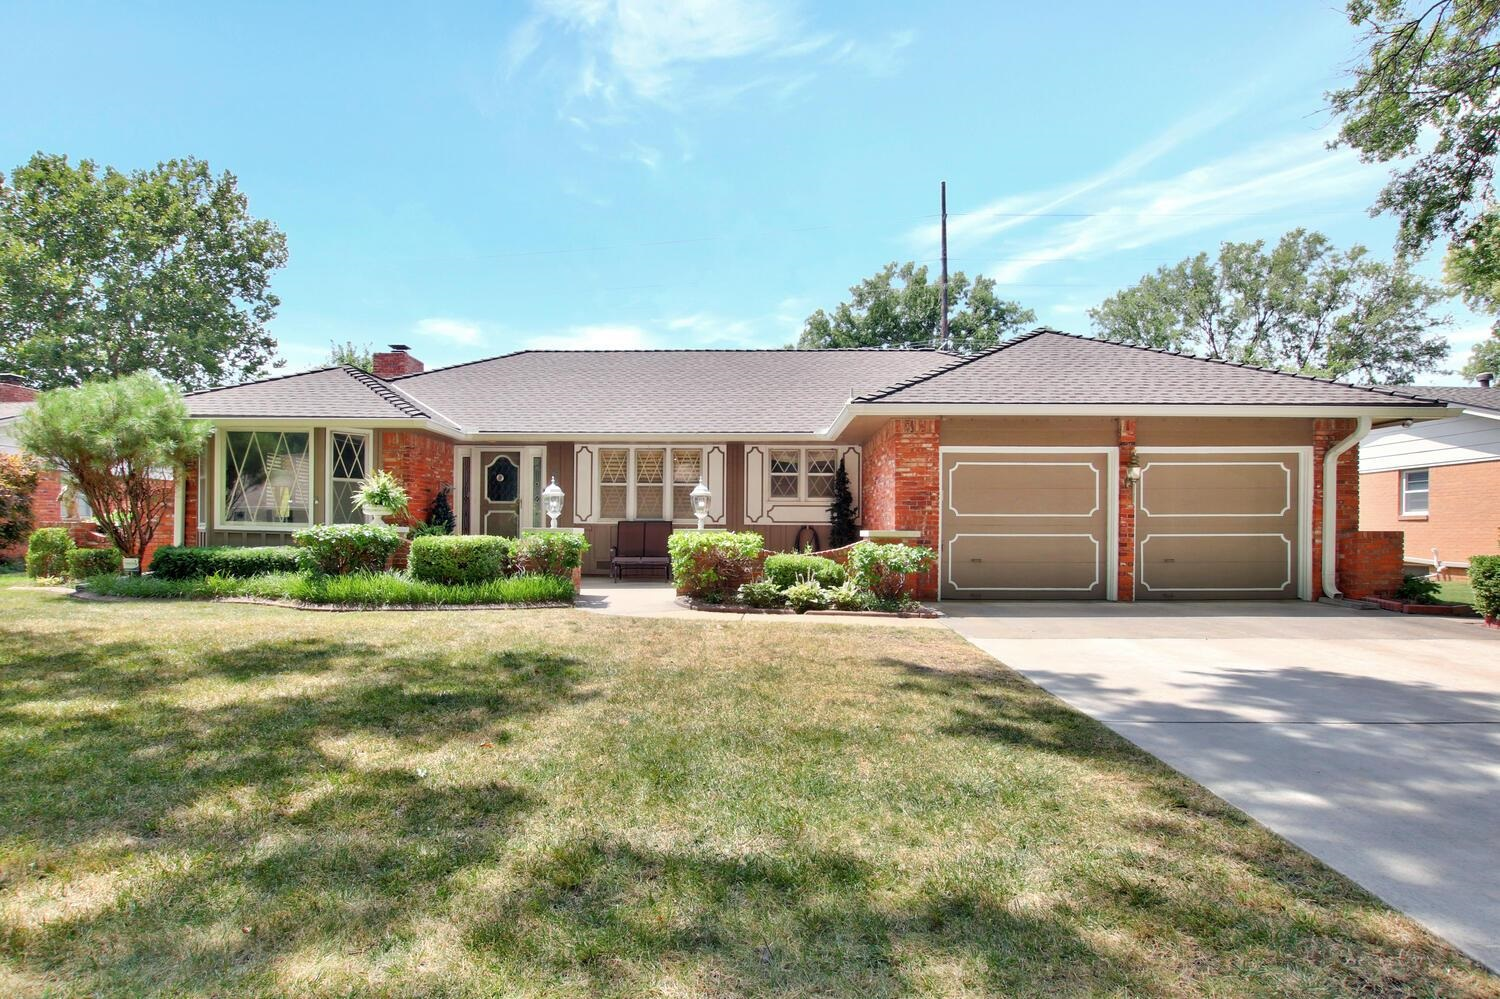 This sunny home in the Rockwood neighborhood has been meticulously cared for. Step into the spacious